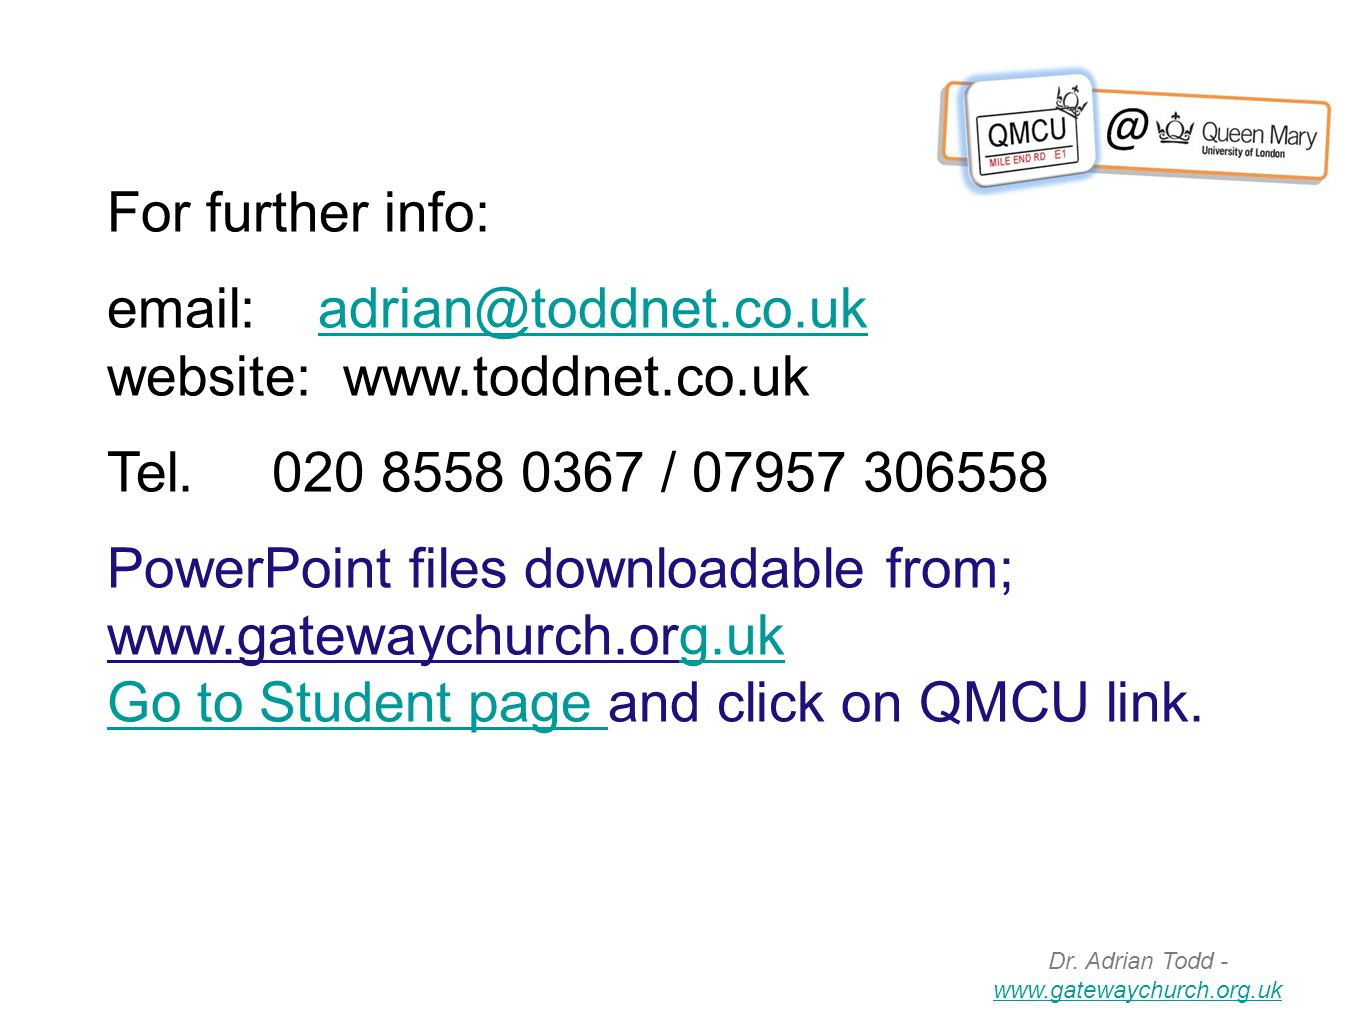 For further info: email: adrian@toddnet.co.ukadrian@toddnet.co.uk website: www.toddnet.co.uk Tel.